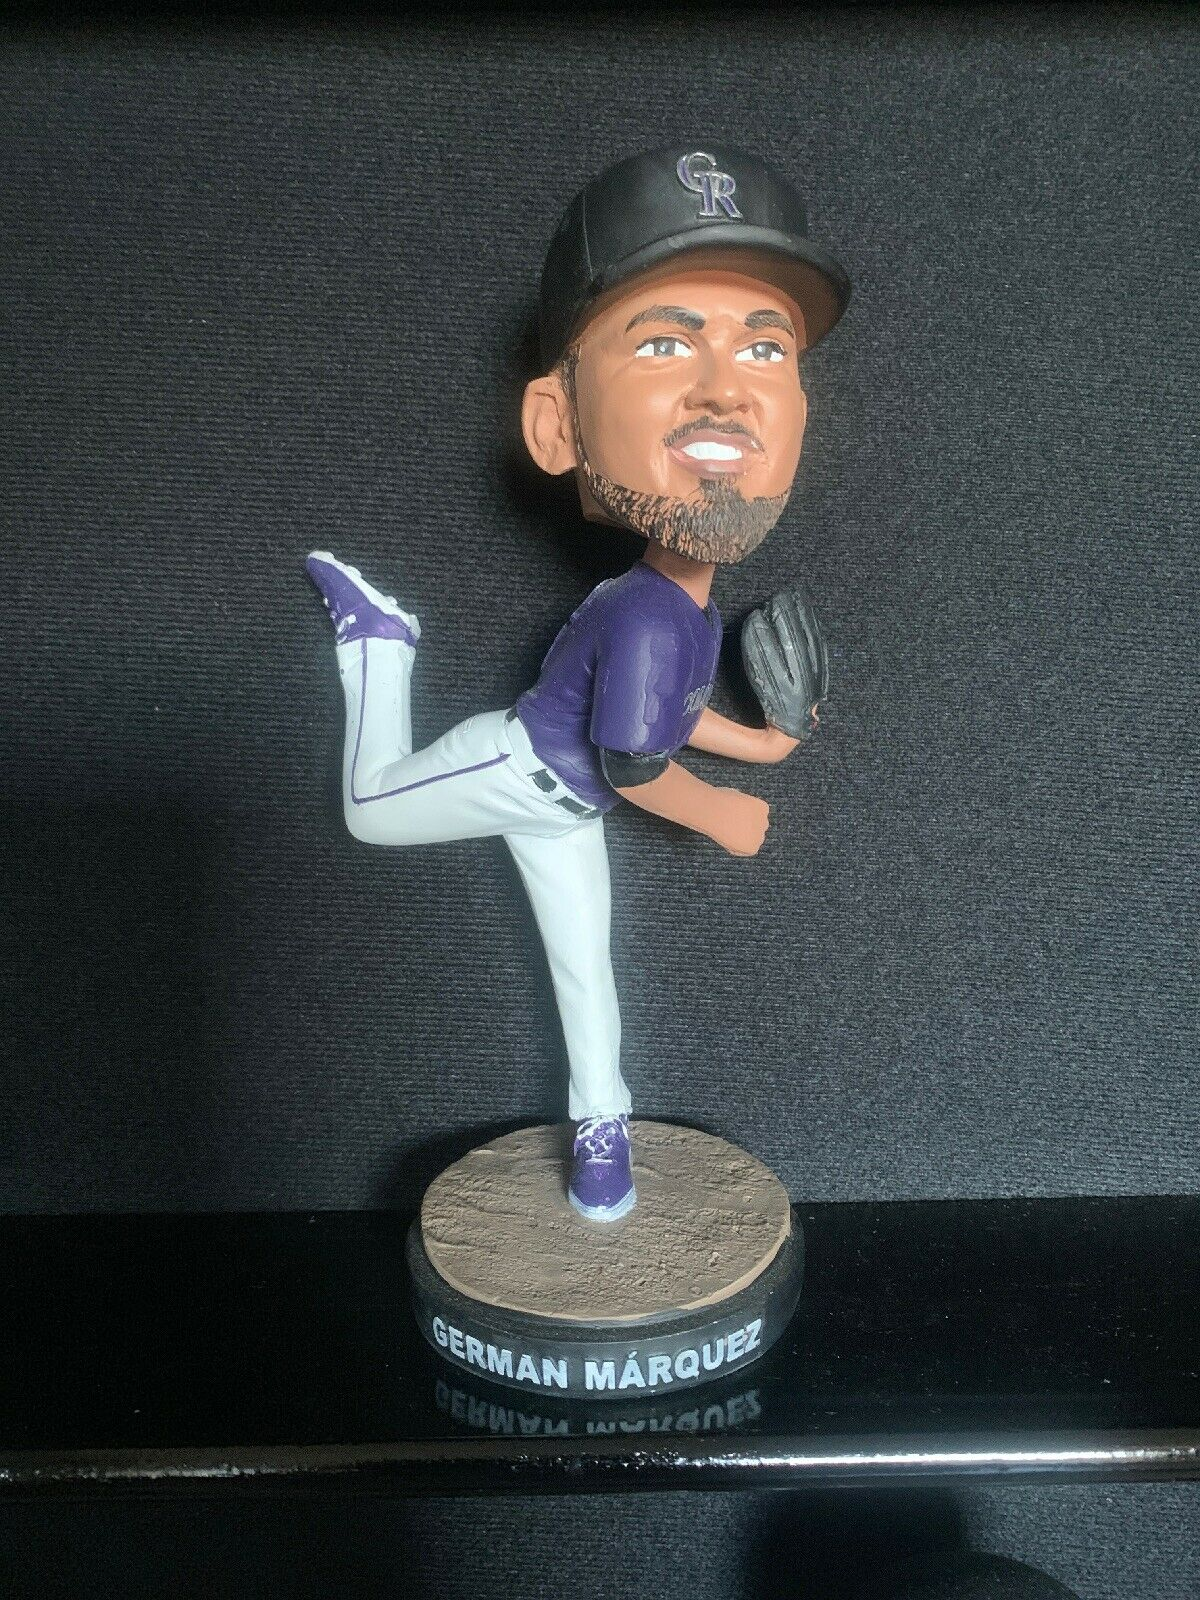 Colorado Rockies 2019 German Marquez SGA Bobblehead